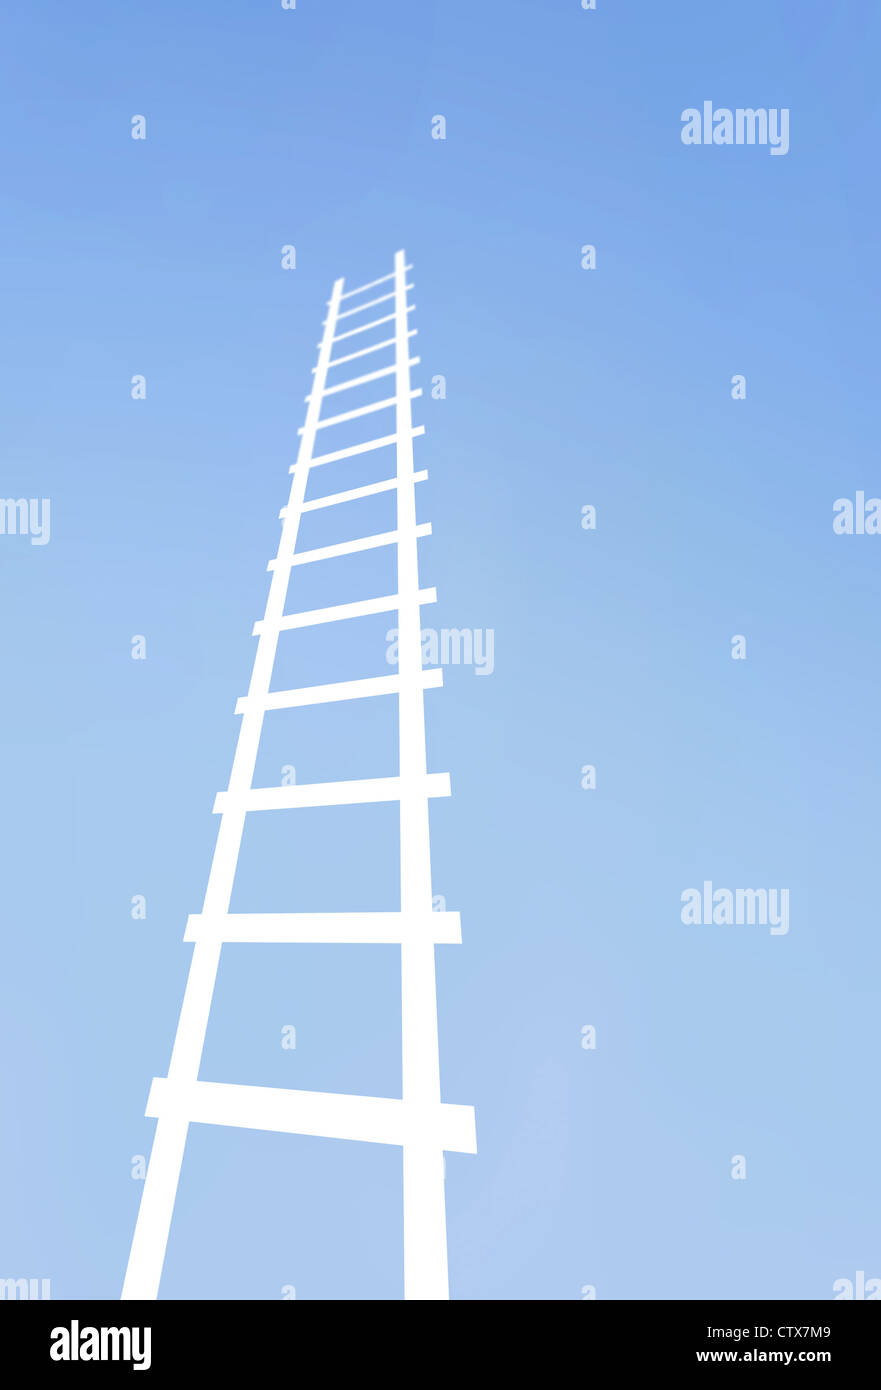 Moving up the ladder - Stock Image